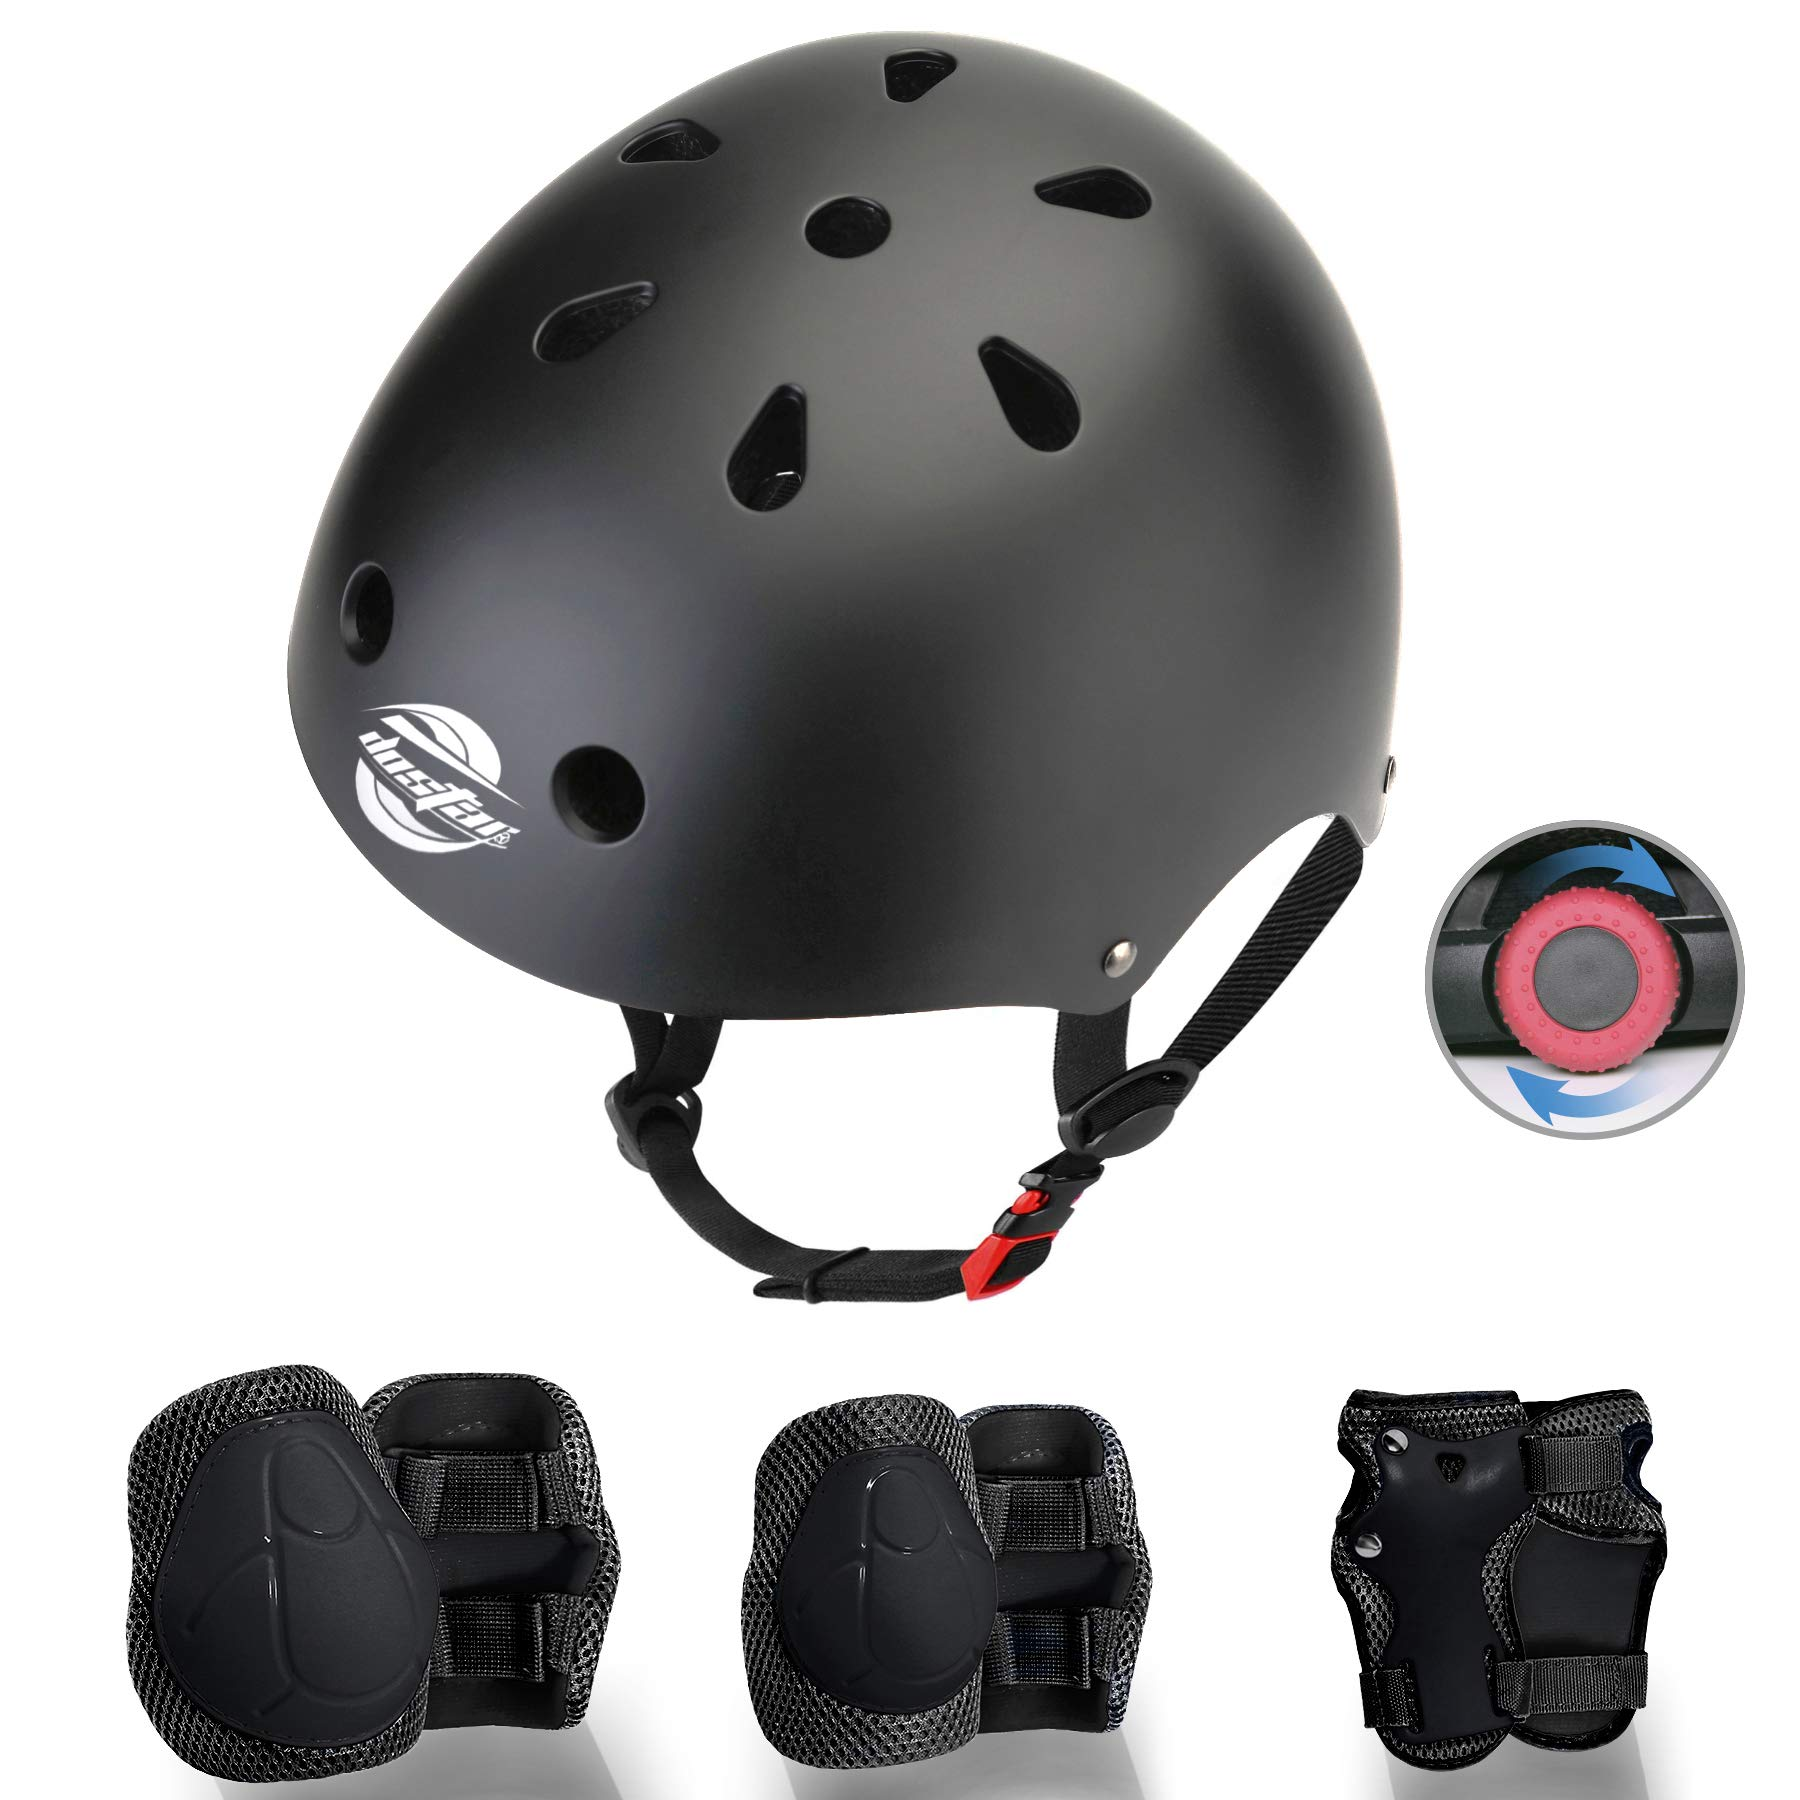 Bike Adjustable Helmet CPSC Certified for Ages 3-8 Years Boys Girls with Protective Gear Set Knee/&Elbow Pads and Wrist Guards for Skateboard Scooter. Roller Skating Cycling